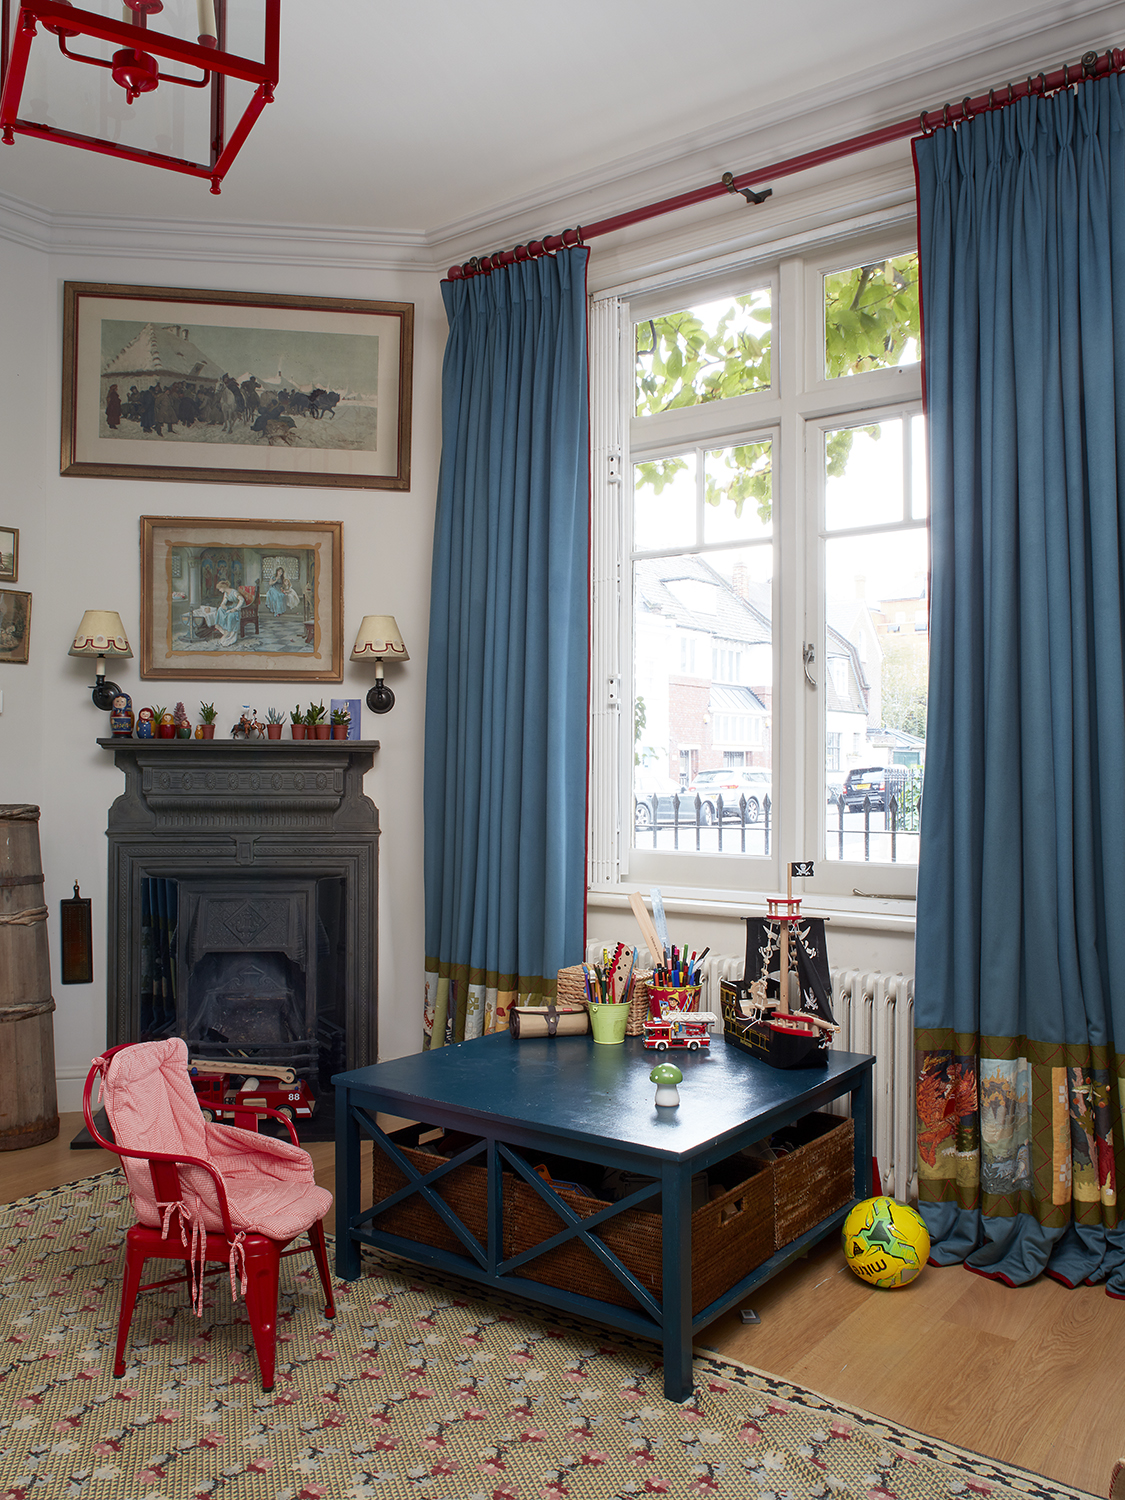 Glebe Place playroom